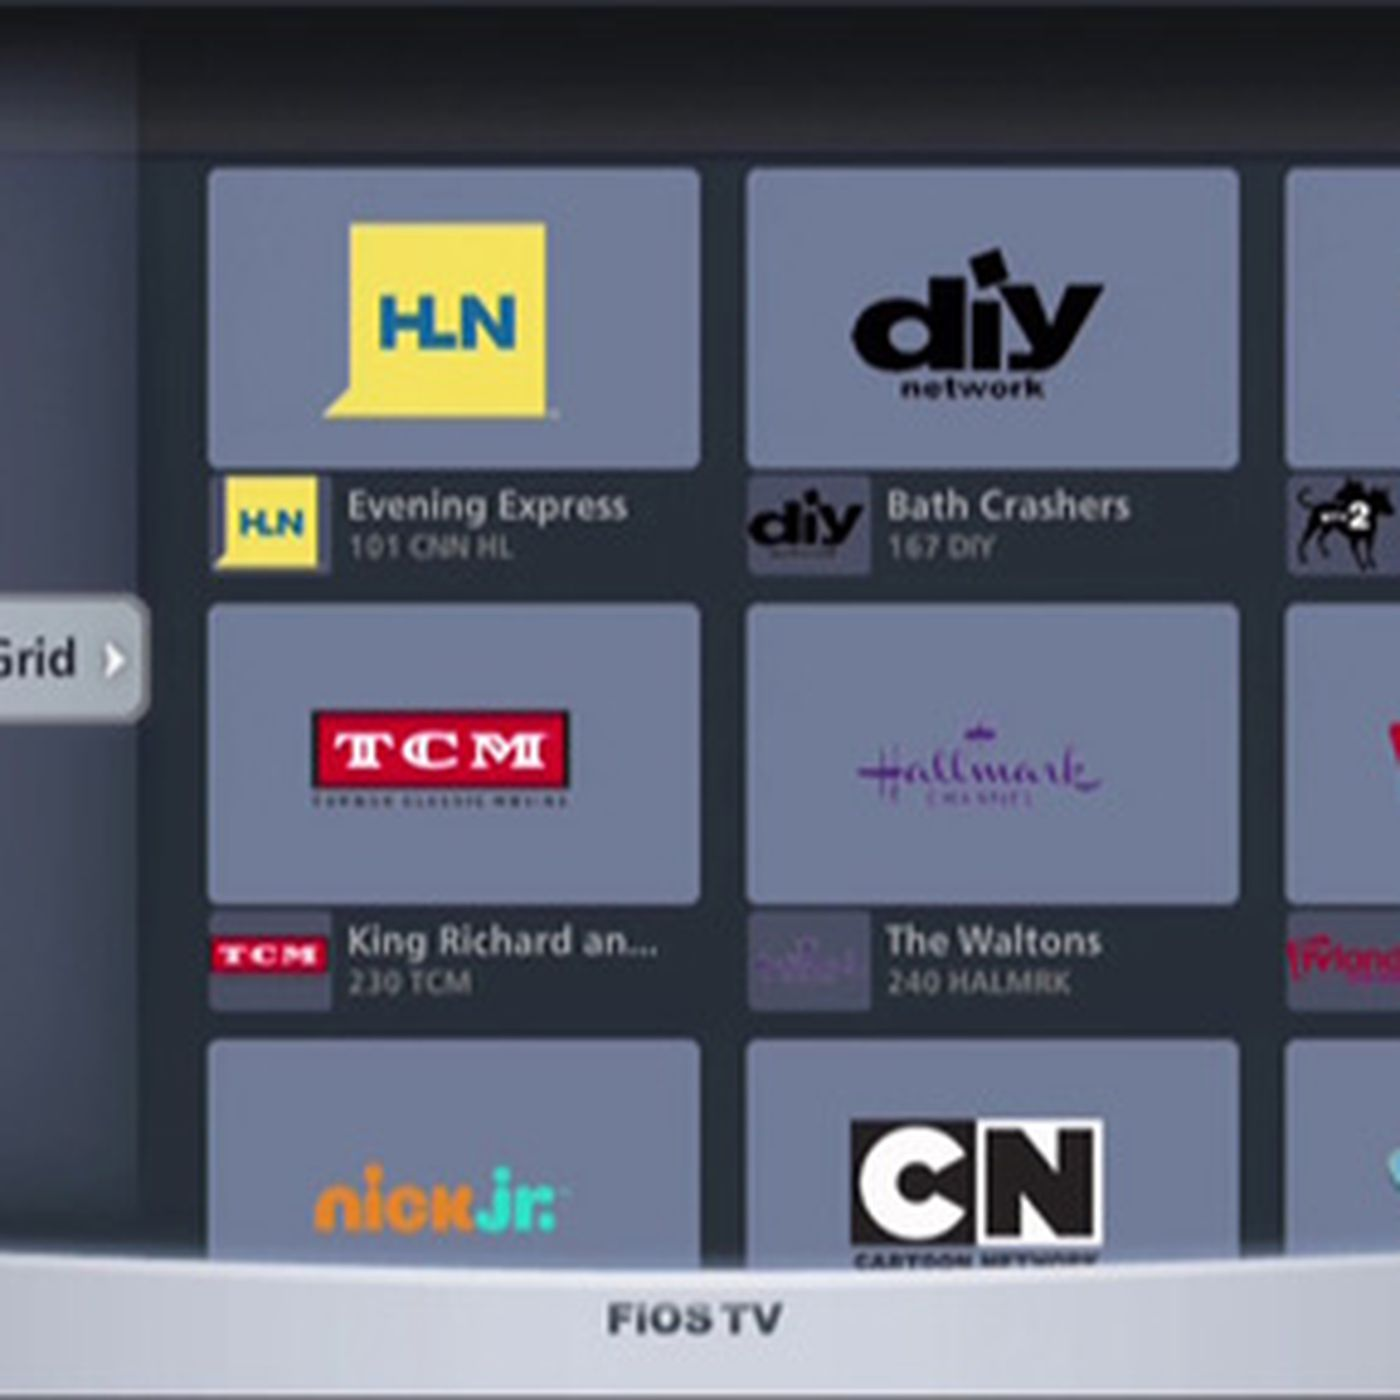 Fios Tv App For Samsung Devices Launches Stream 26 Live Tv Channels No Set Top Box Required The Verge